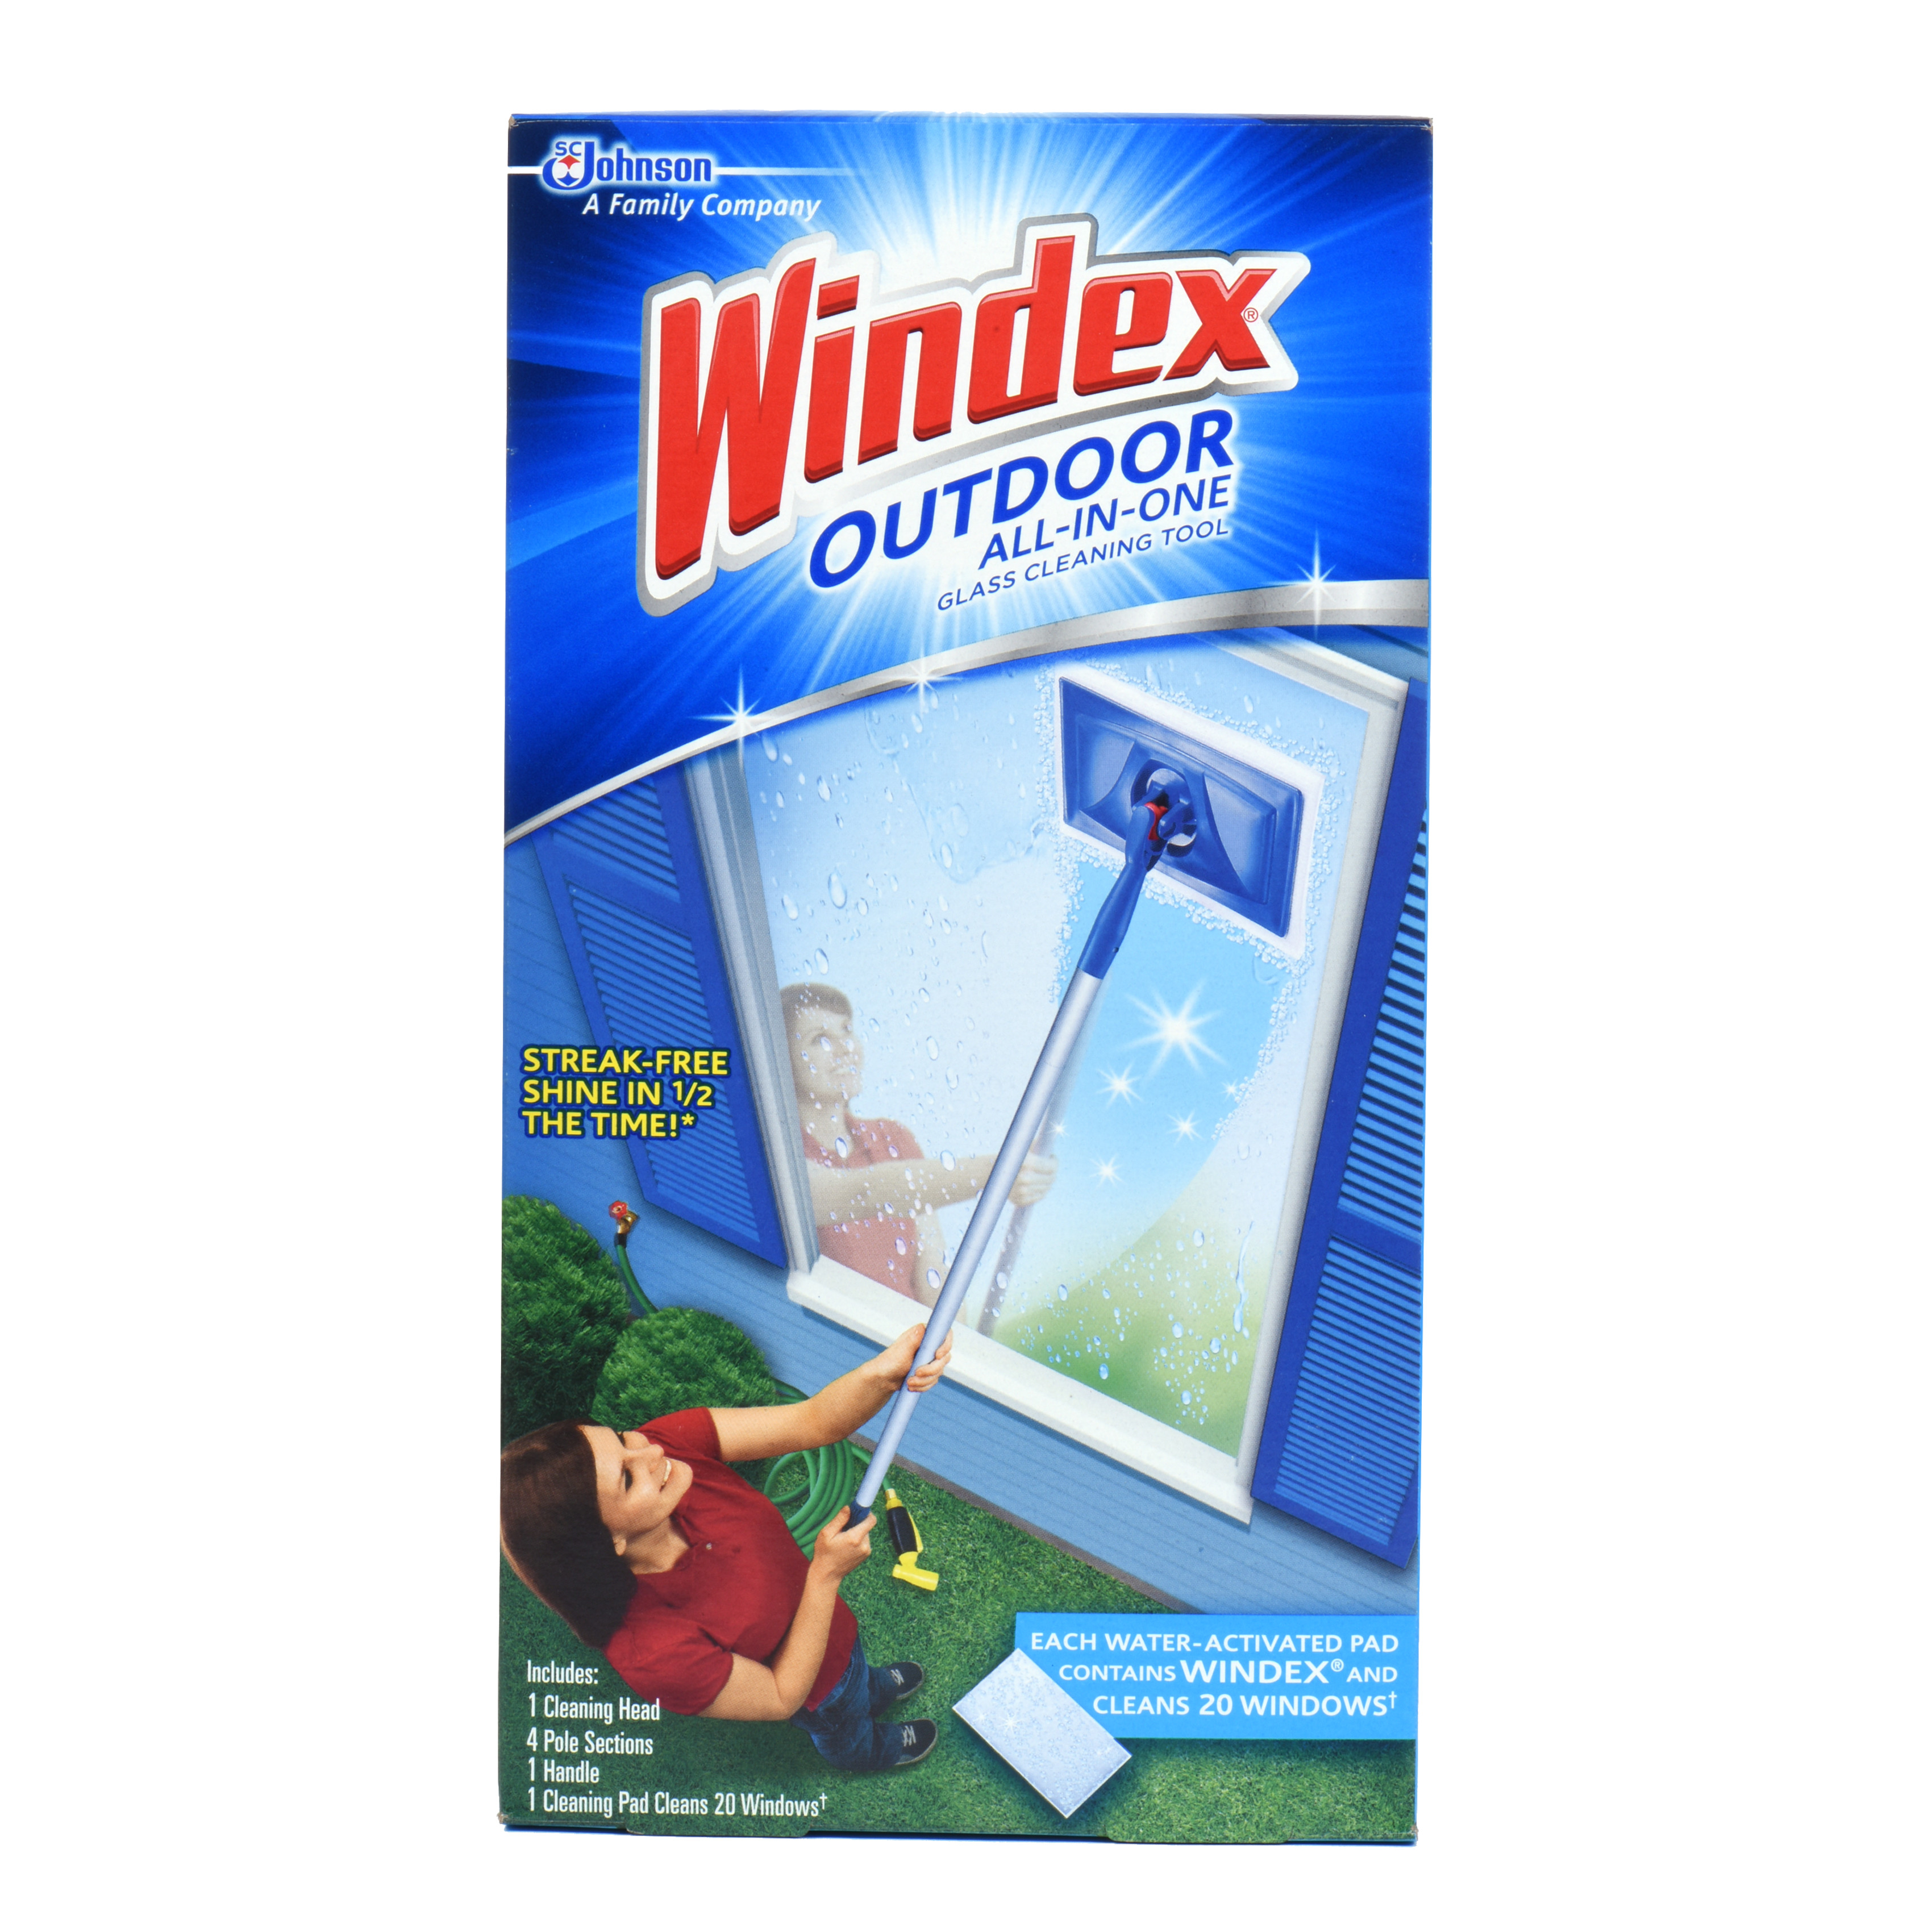 Windex Outdoor All In One Glass Cleaning Tool Starter Kit